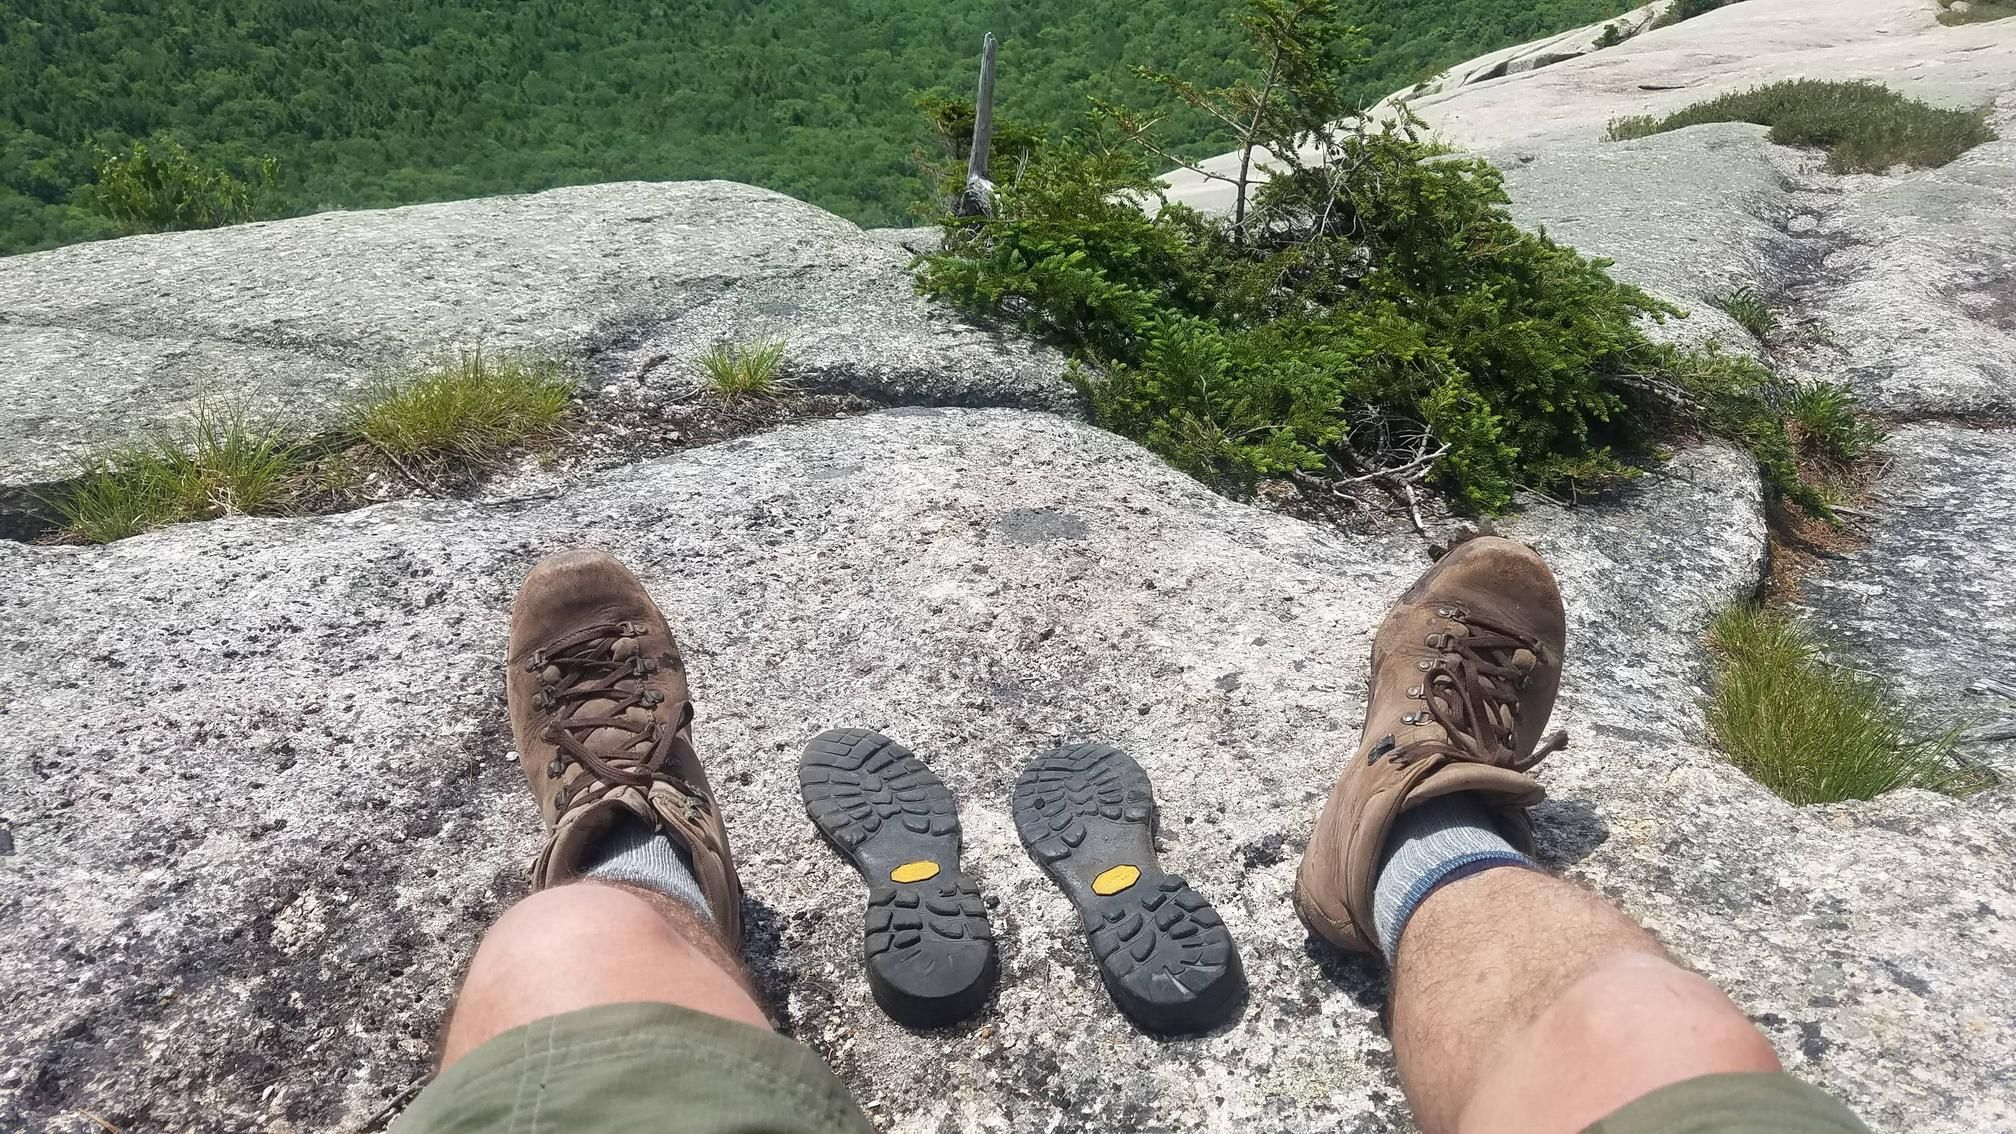 Went hiking for the first time in a while. My hiking boots are just as out of shape as I am.